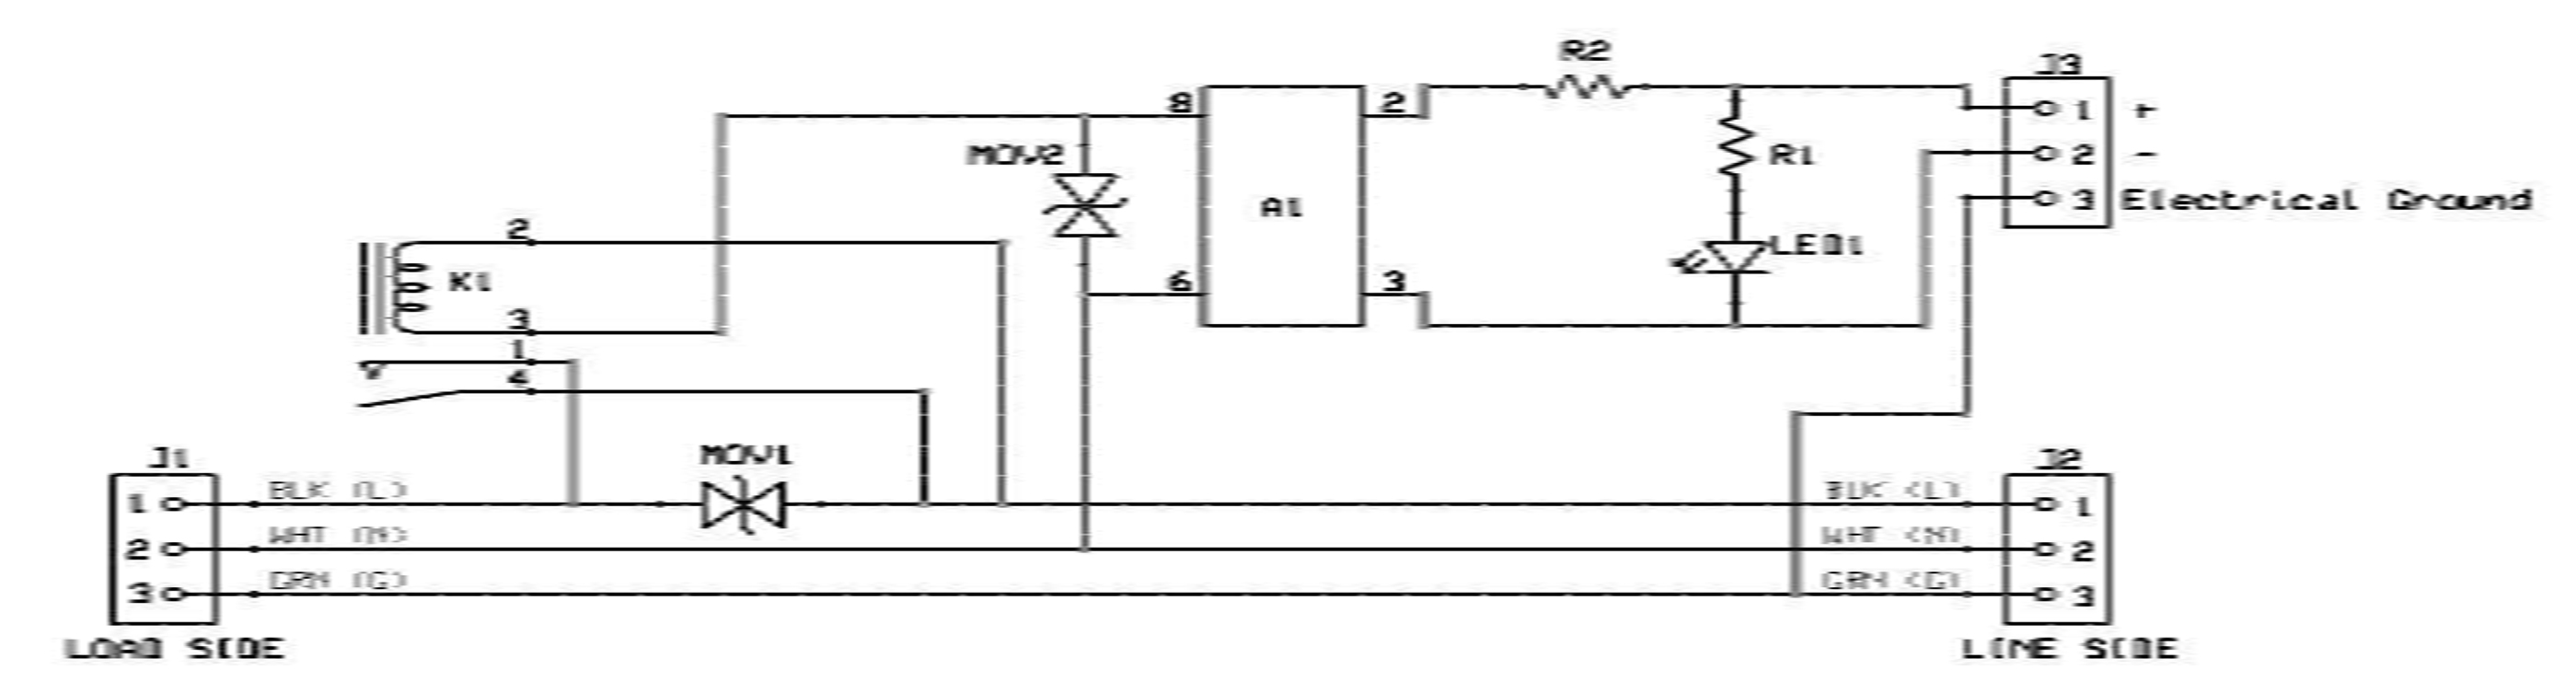 Drivers Relays And Solid State Mbed Relay Switch Example Power Tail Ii Schematic